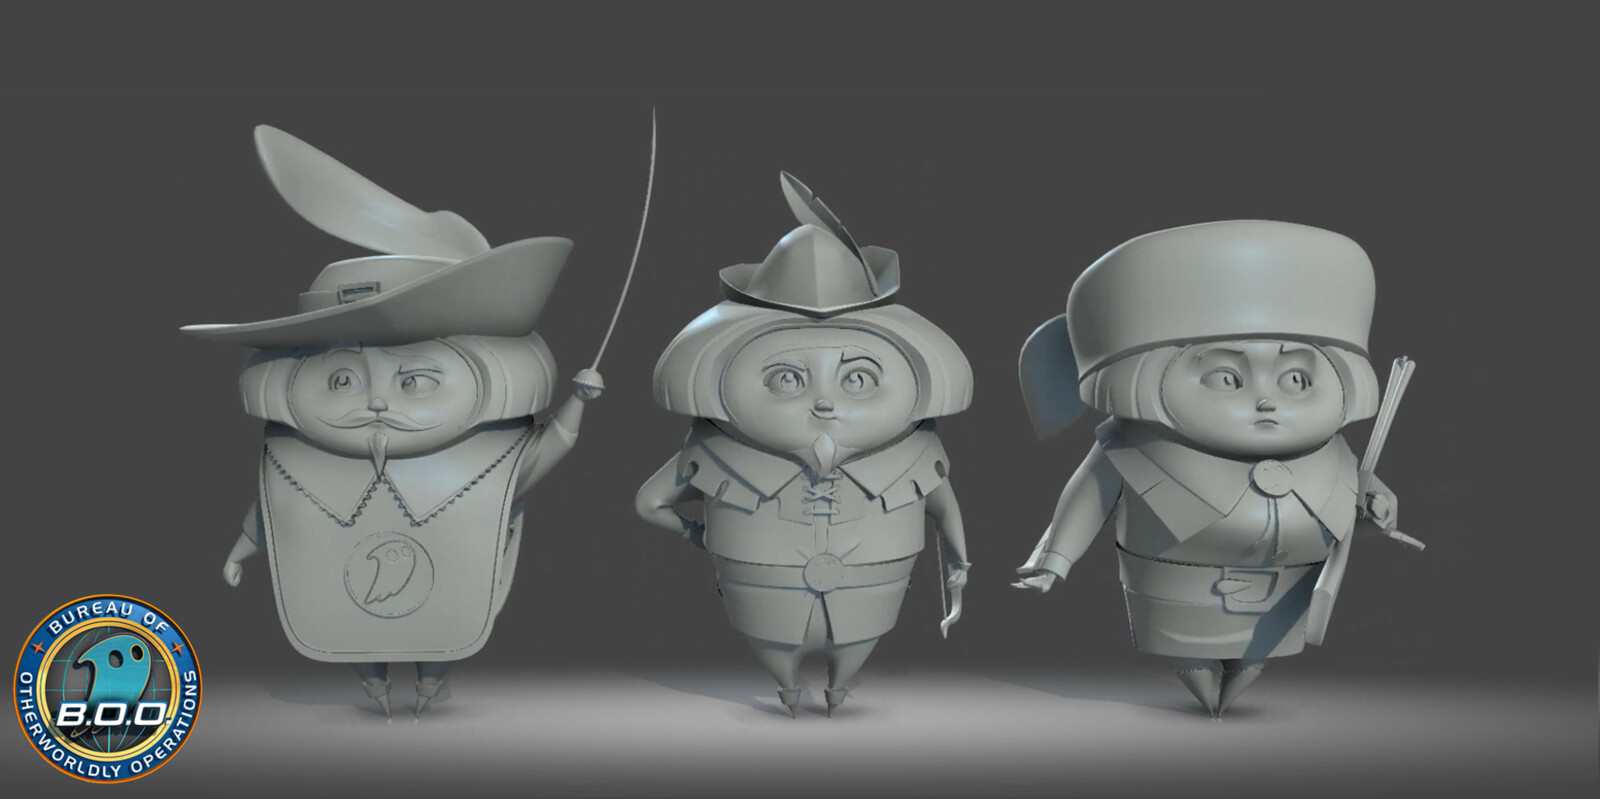 Concept sculpts of historical statues for the cancelled project B.O.O. (C. 2013). Character design by Carlos Grangel and Devin Crane.